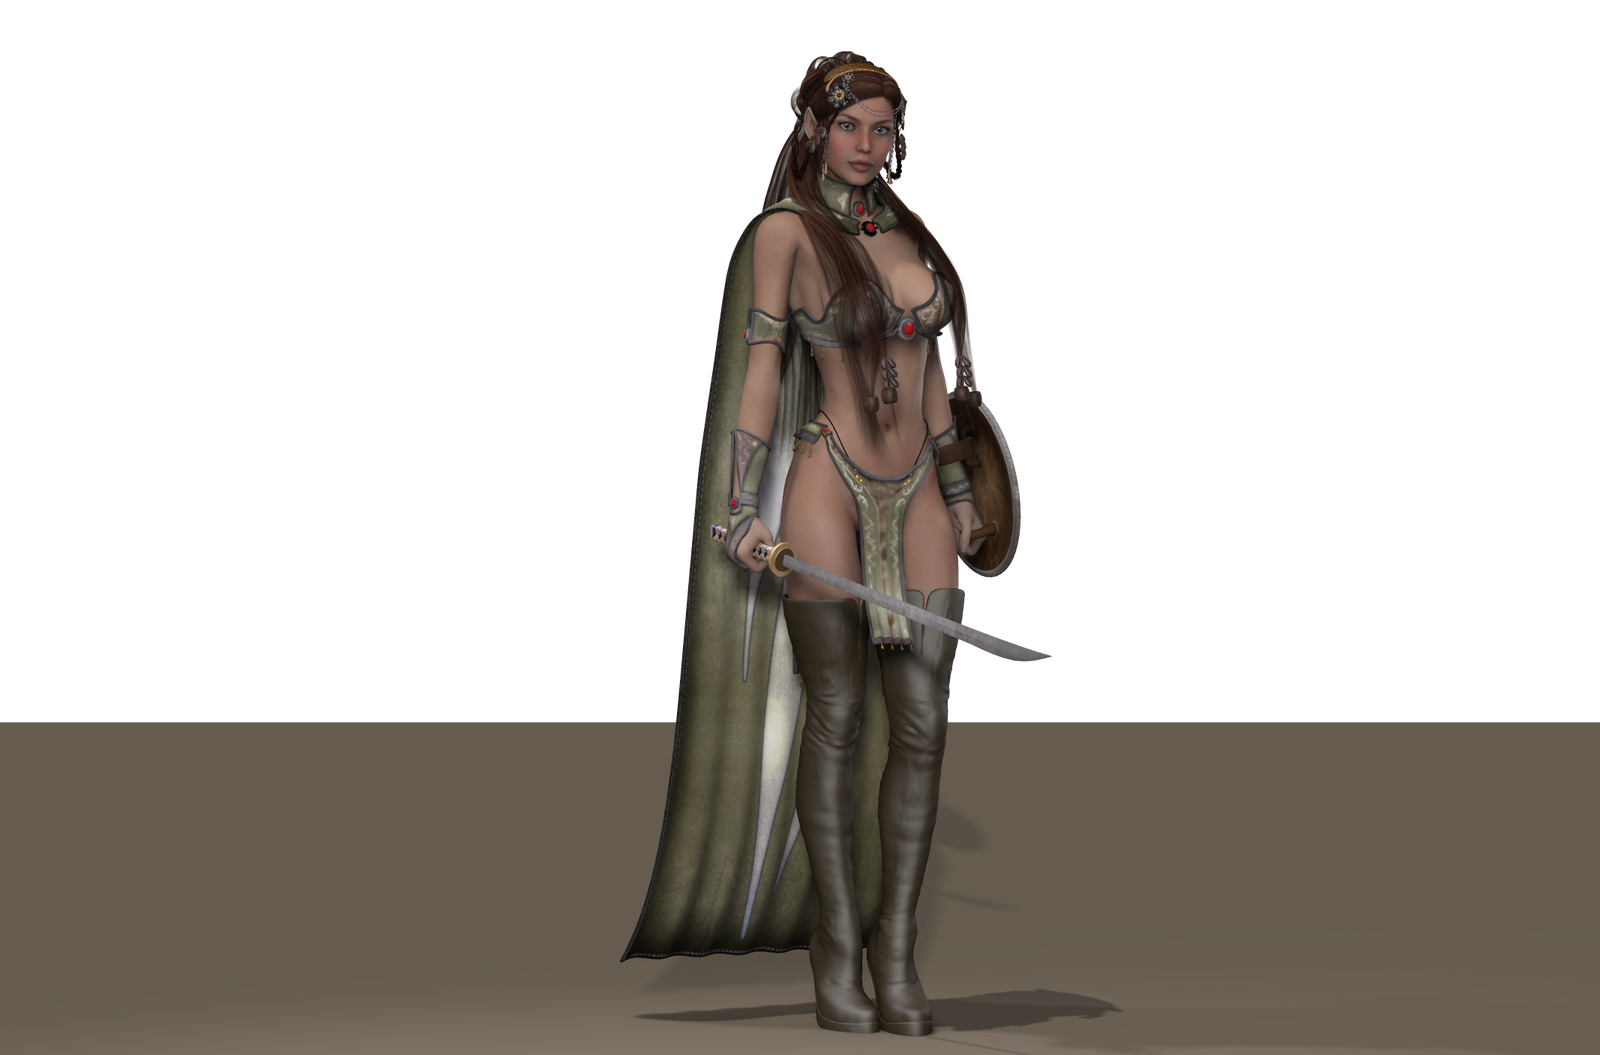 Apologise, but, nude sexy female elf warriors art share your